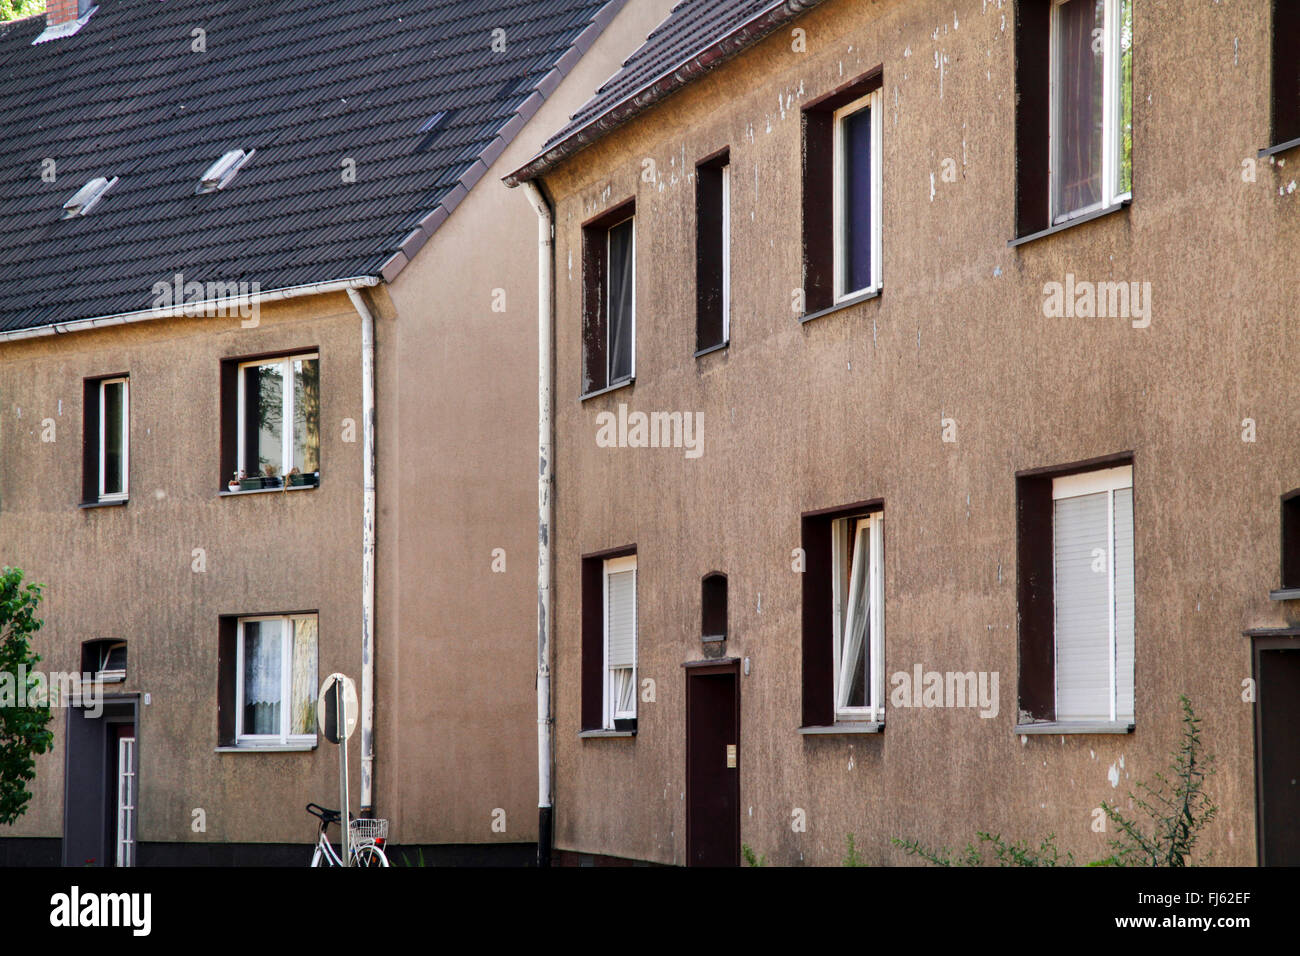 old tenement houses in the Ruhr area, Germany, North Rhine-Westphalia, Ruhr Area, Bottrop - Stock Image